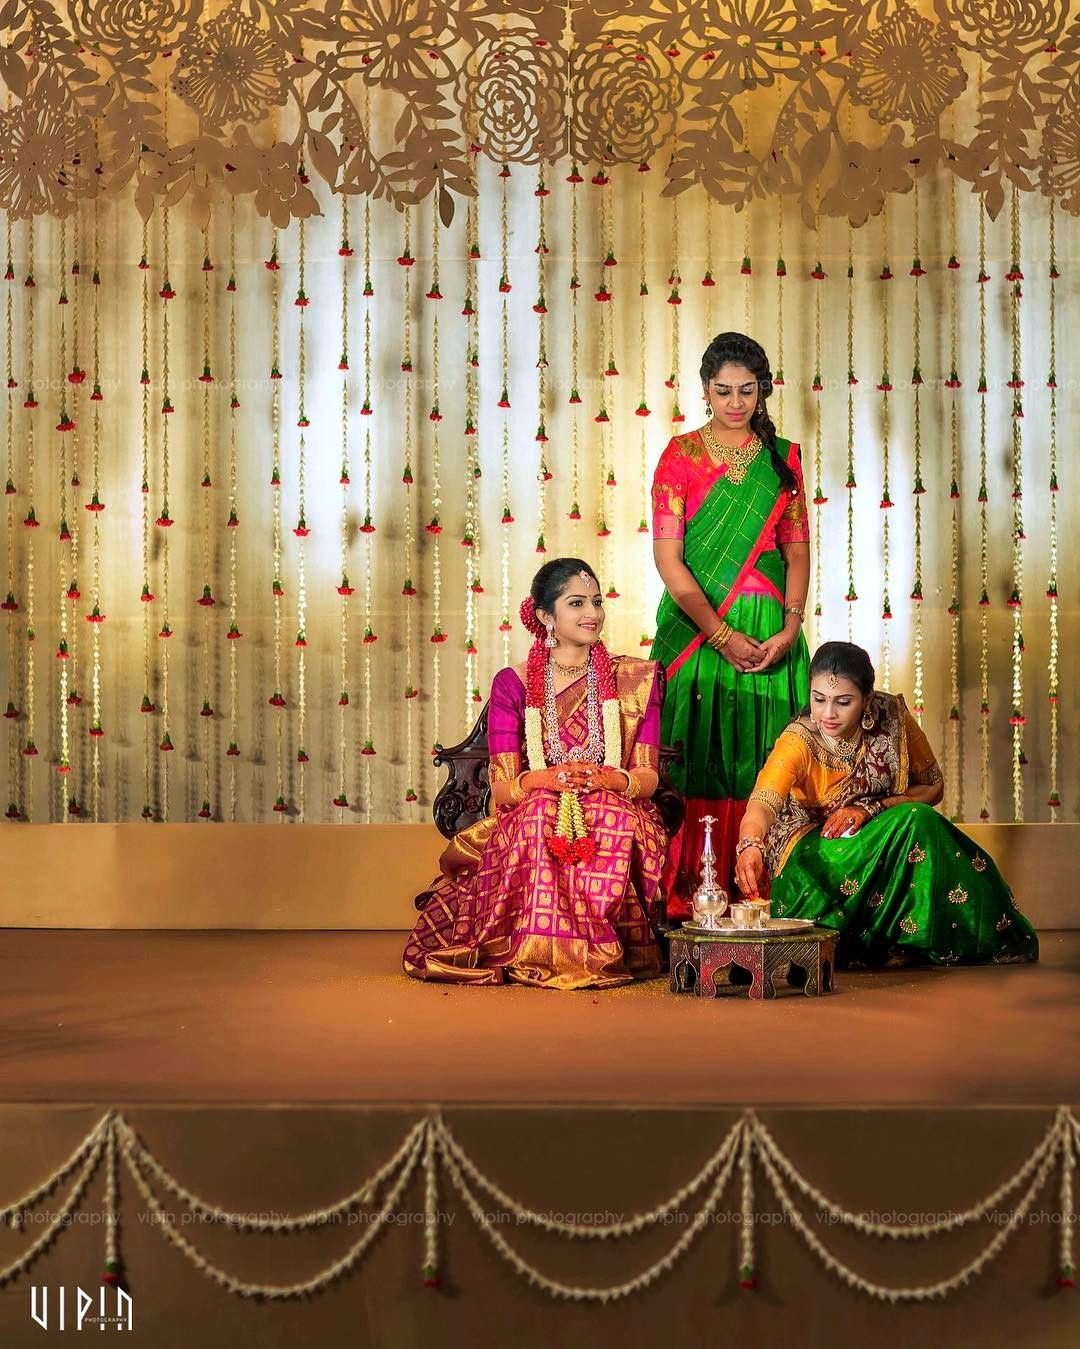 Baby Shower Stage Decoration Ideas In India : shower, stage, decoration, ideas, india, Indian, Wedding, Decorations